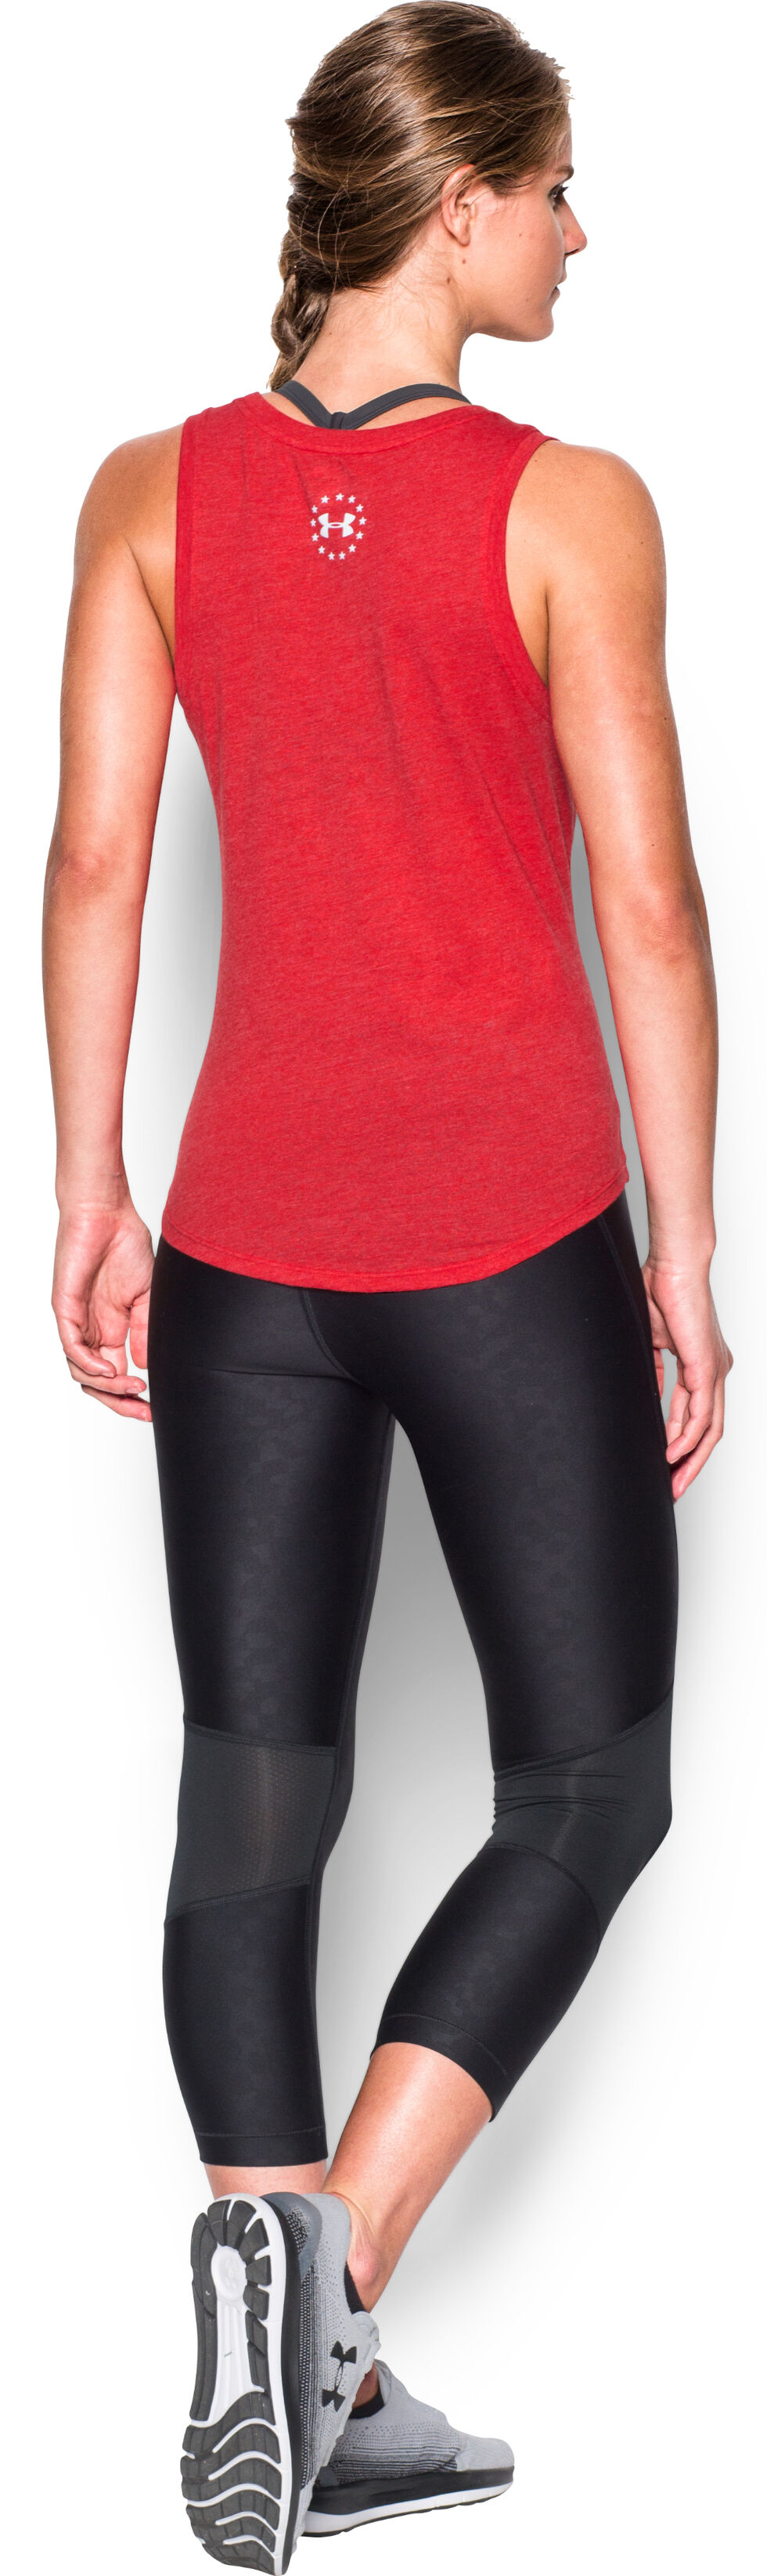 Under Armour Women's Red Charged Cotton® Tri-Blend Freedom Brave Tank, , hi-res